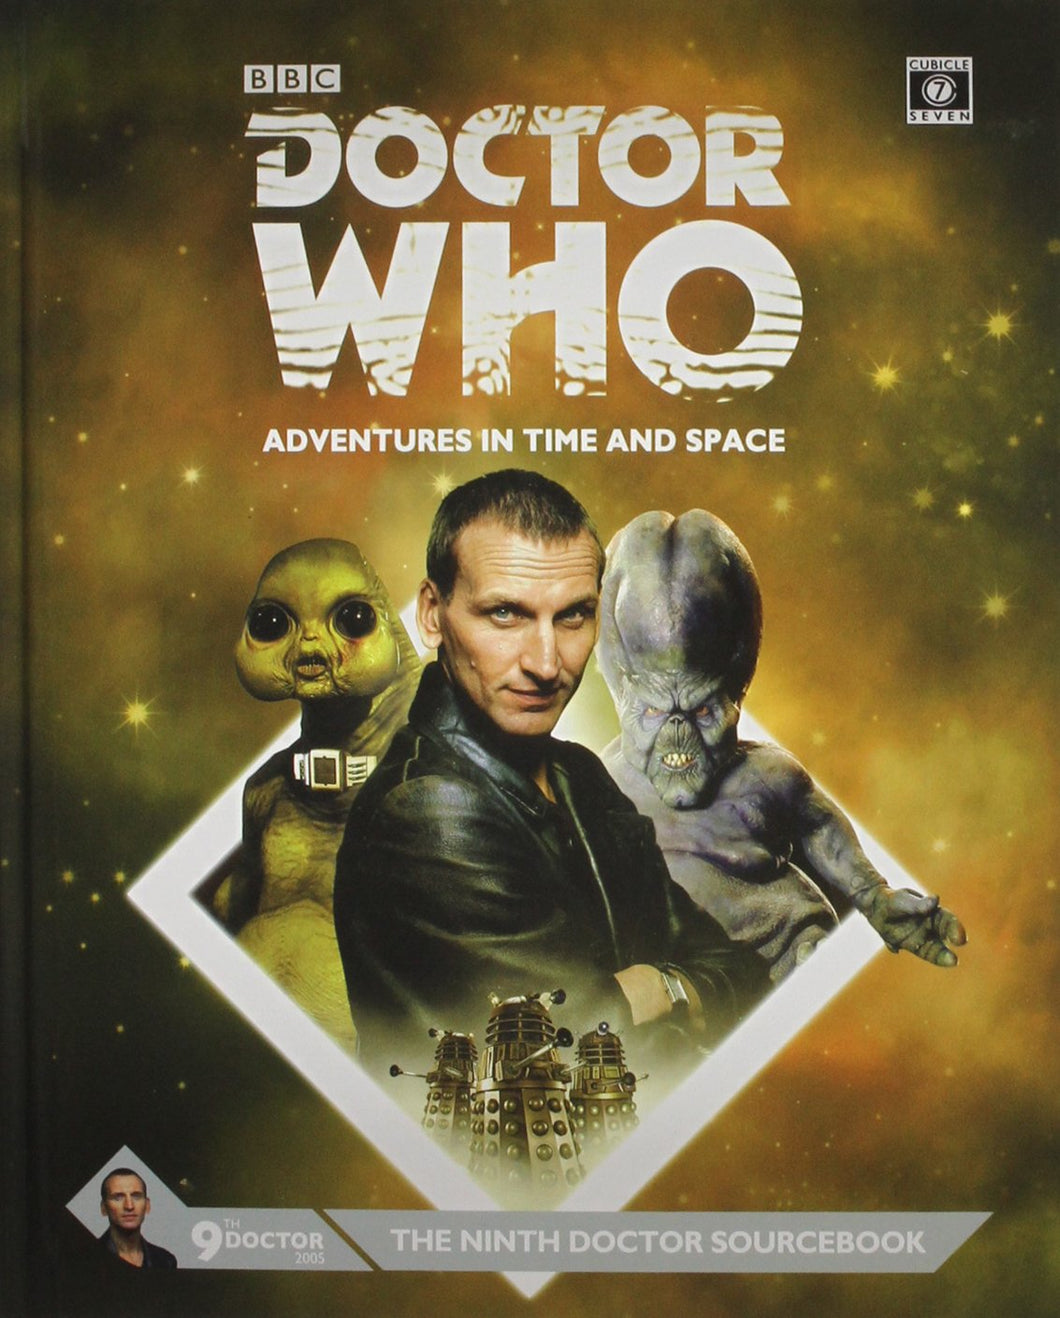 Doctor Who RPG: The Ninth Doctor Sourcebook Hardcover